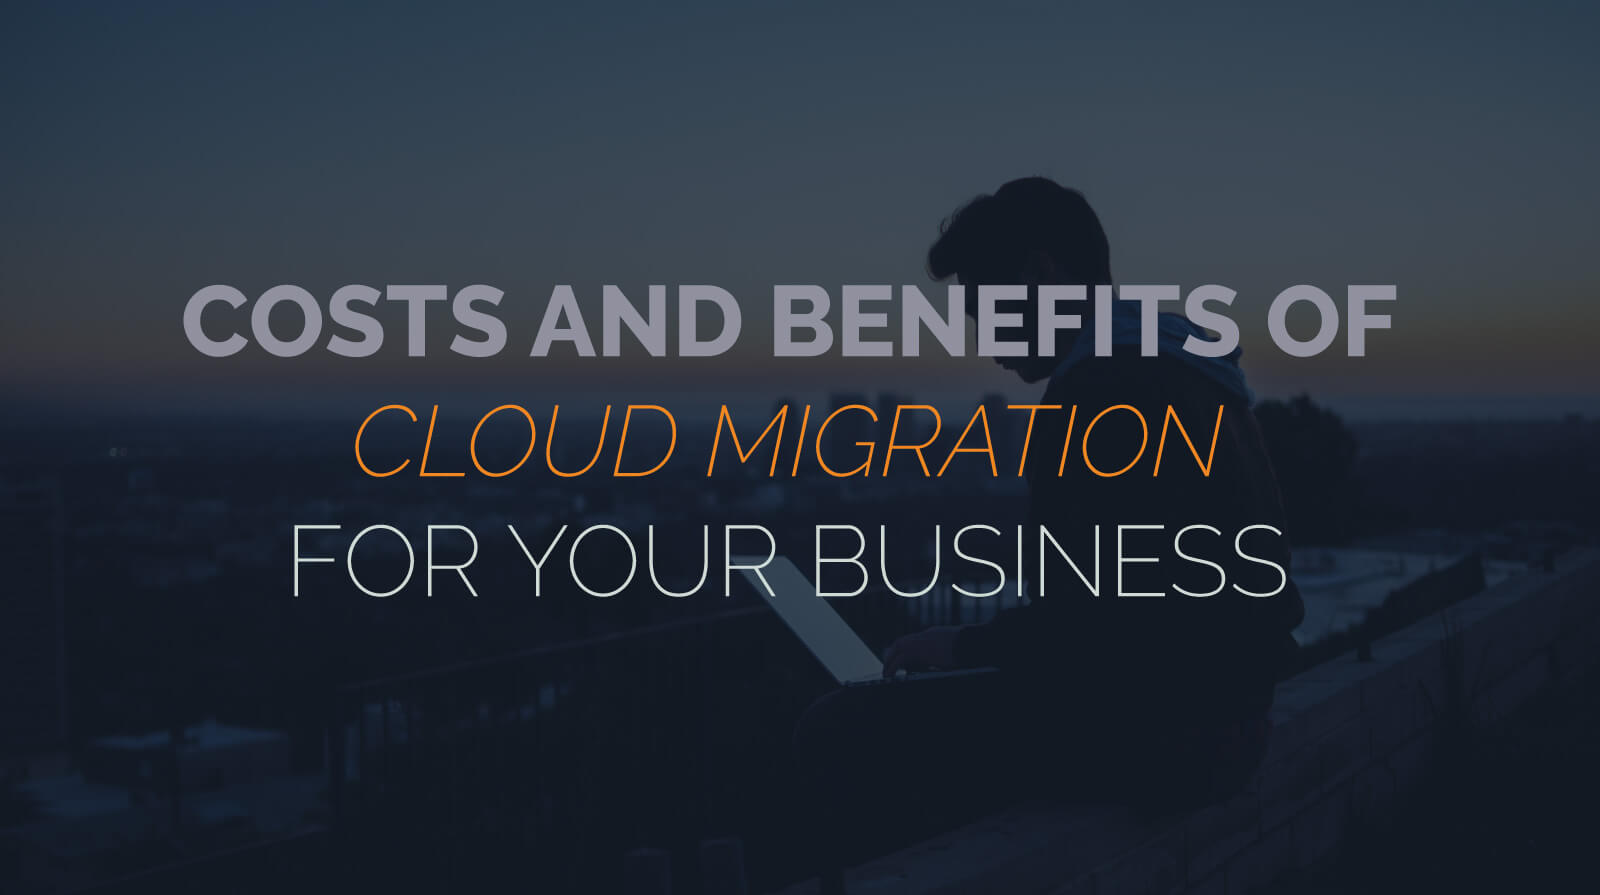 Costs and Benefits of Cloud Migration for Your Business